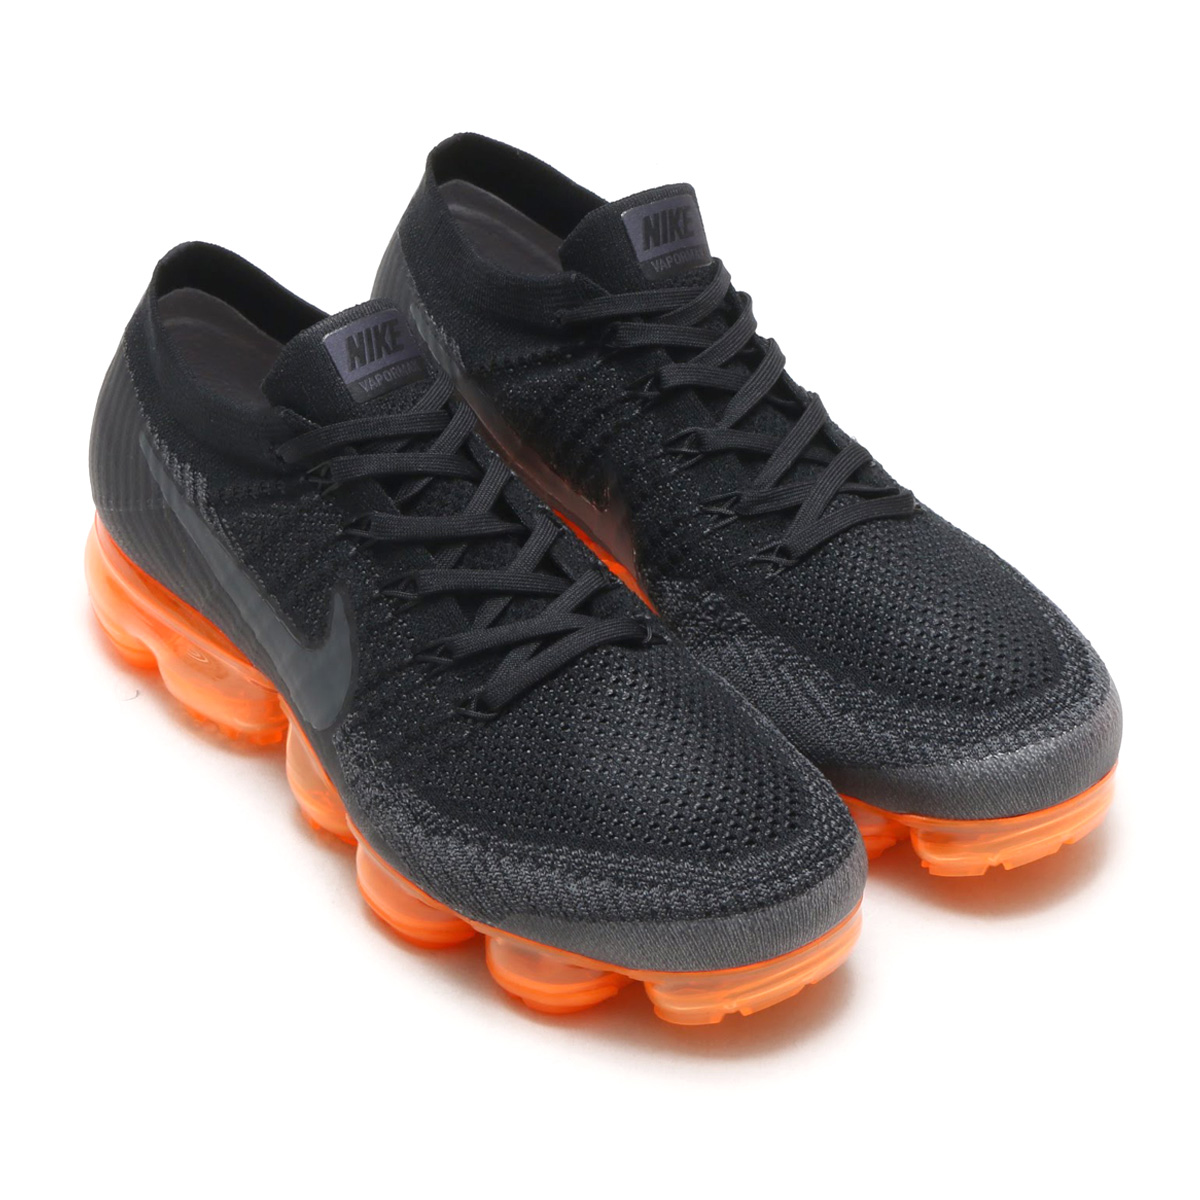 29b6f5a9383e9 NIKE AIR VAPORMAX FLYKNIT P (Nike air vapor max fried food knit P)  (ANTHRACITE ANTHRACITE-BLACK-RUSH ORANGE) 18SP-S